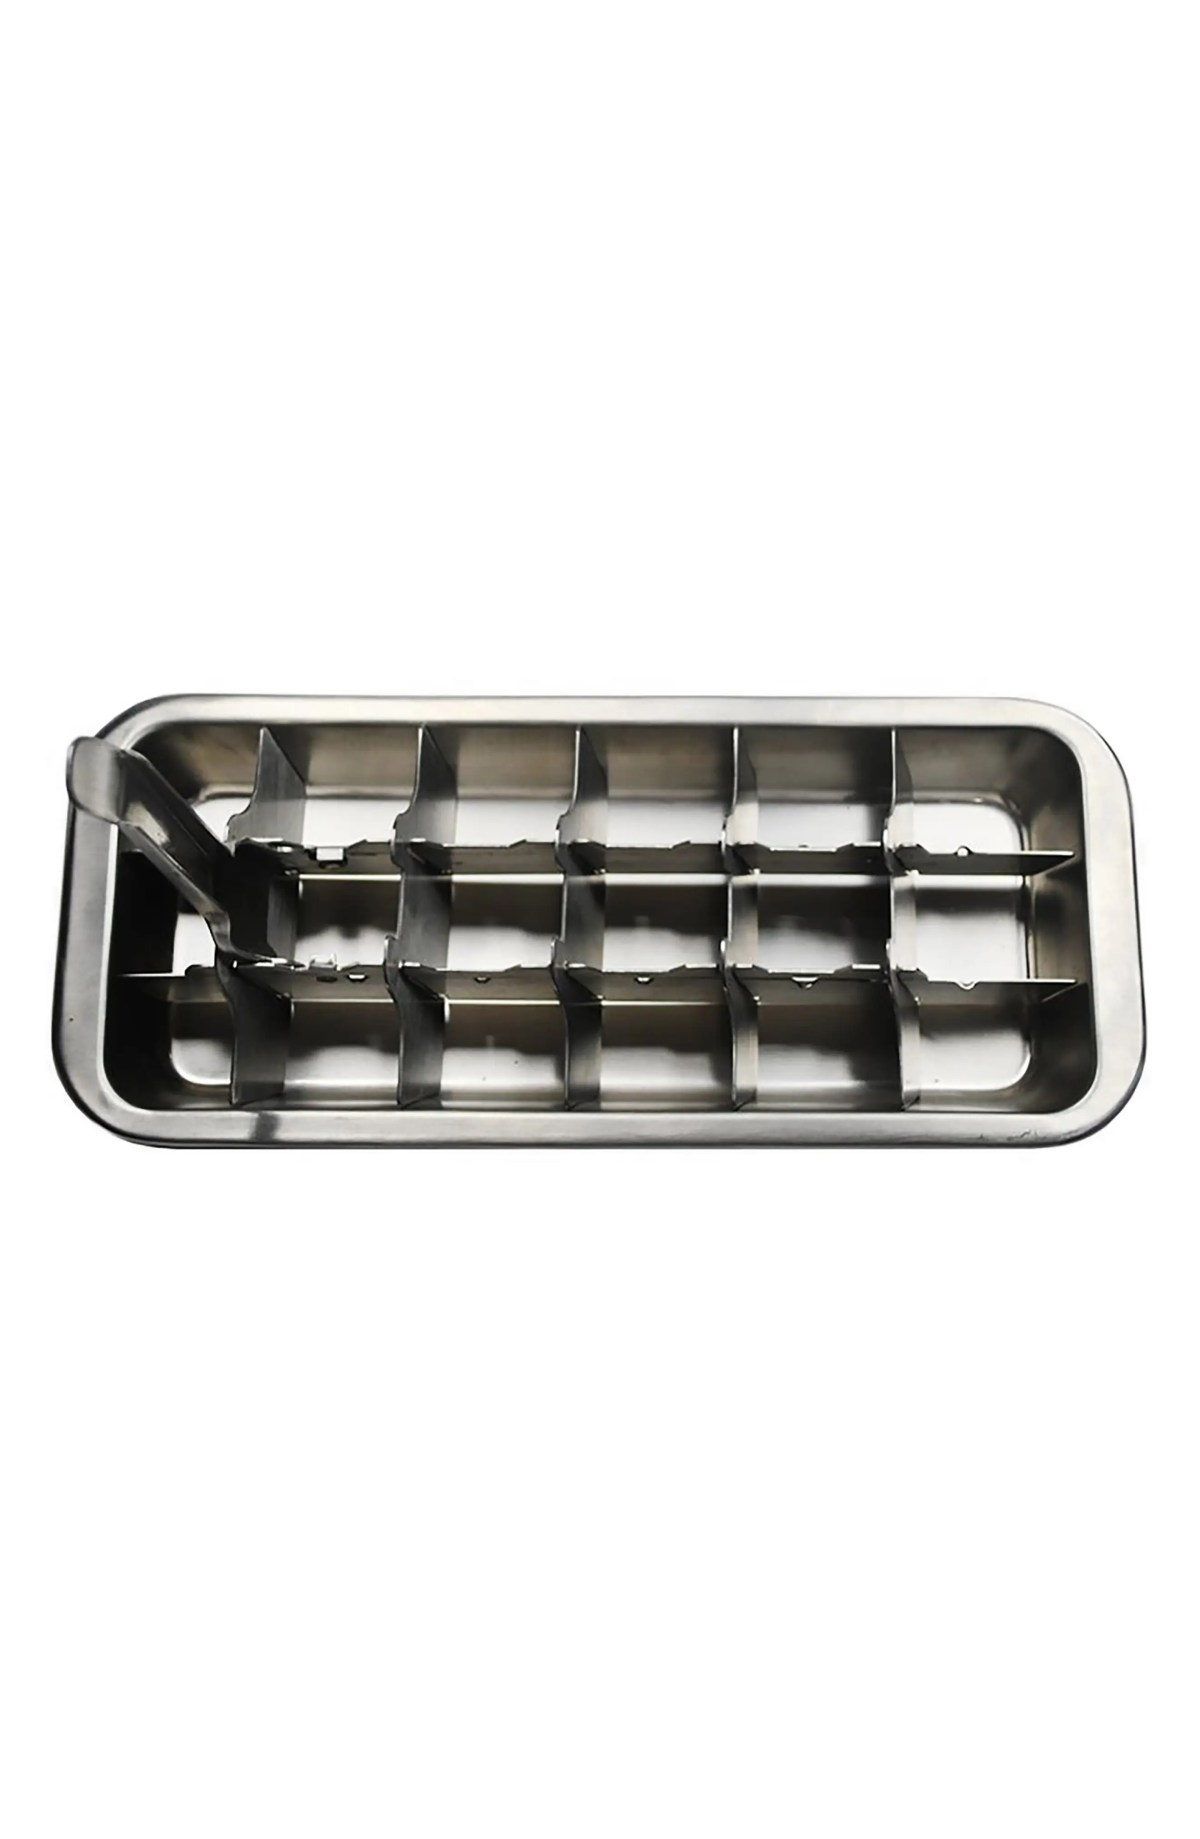 ONYX CONTAINERS Package Free x ONYX CONTAINERS Stainless Steel Ice Cube Tray, Main, color, STAINLESS STEEL